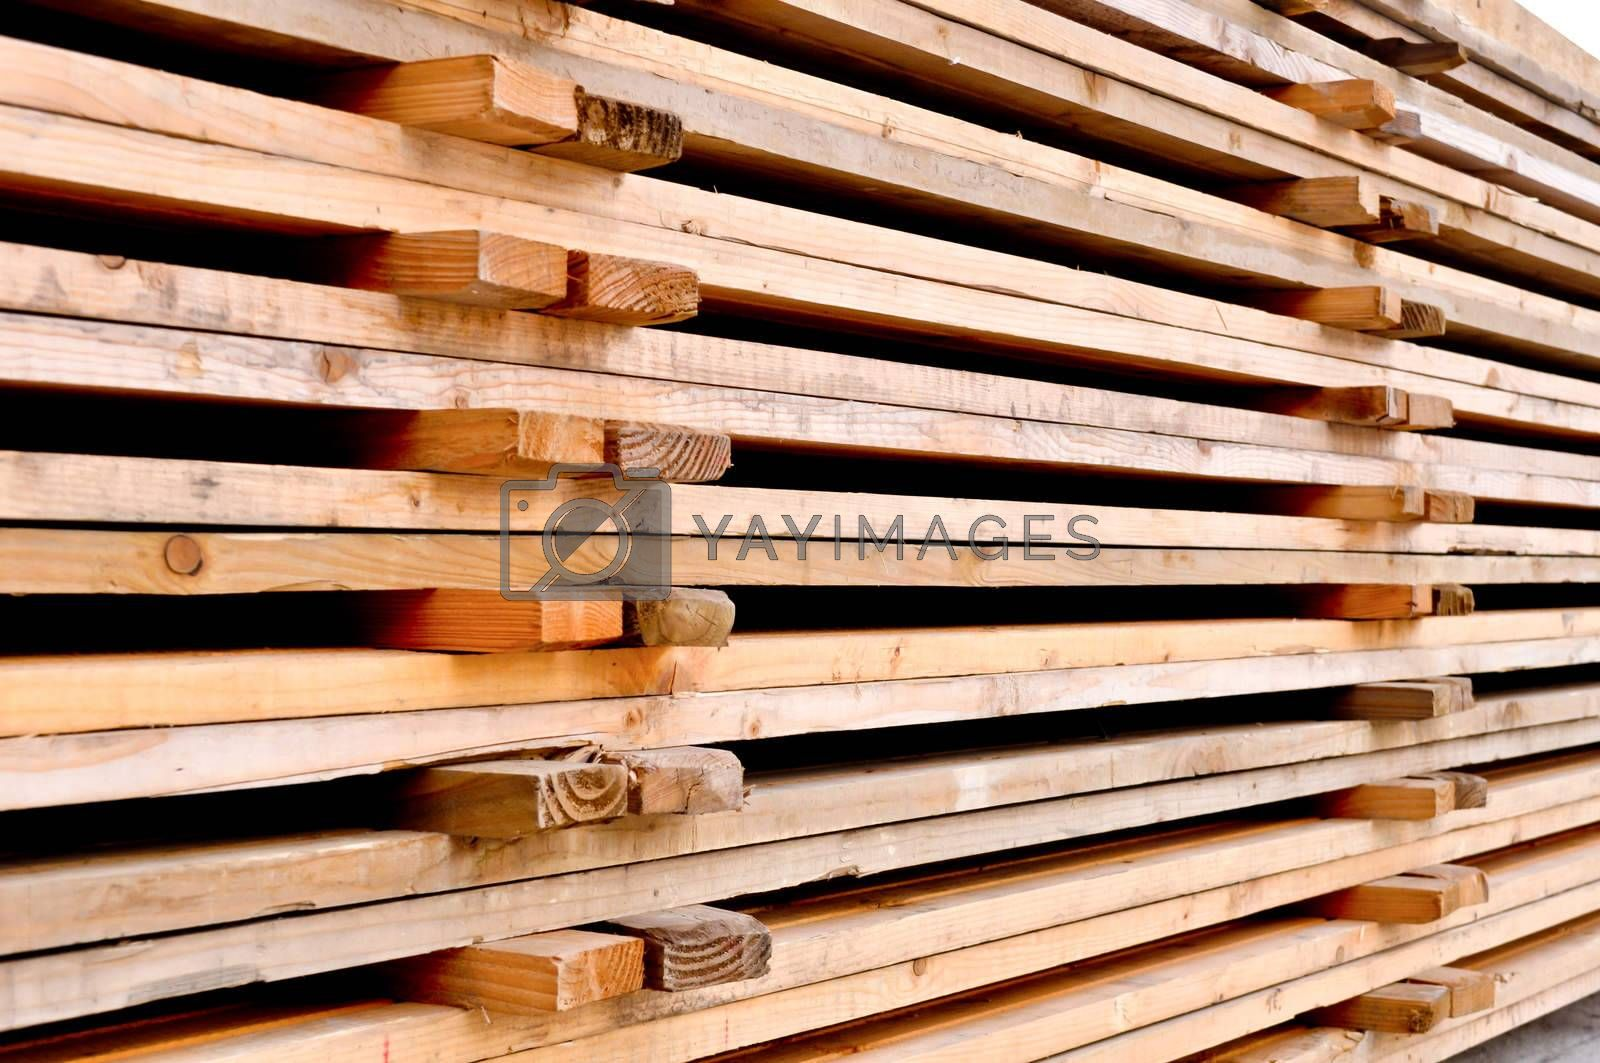 Royalty free image of a stack of the wooden pallets by vlaru